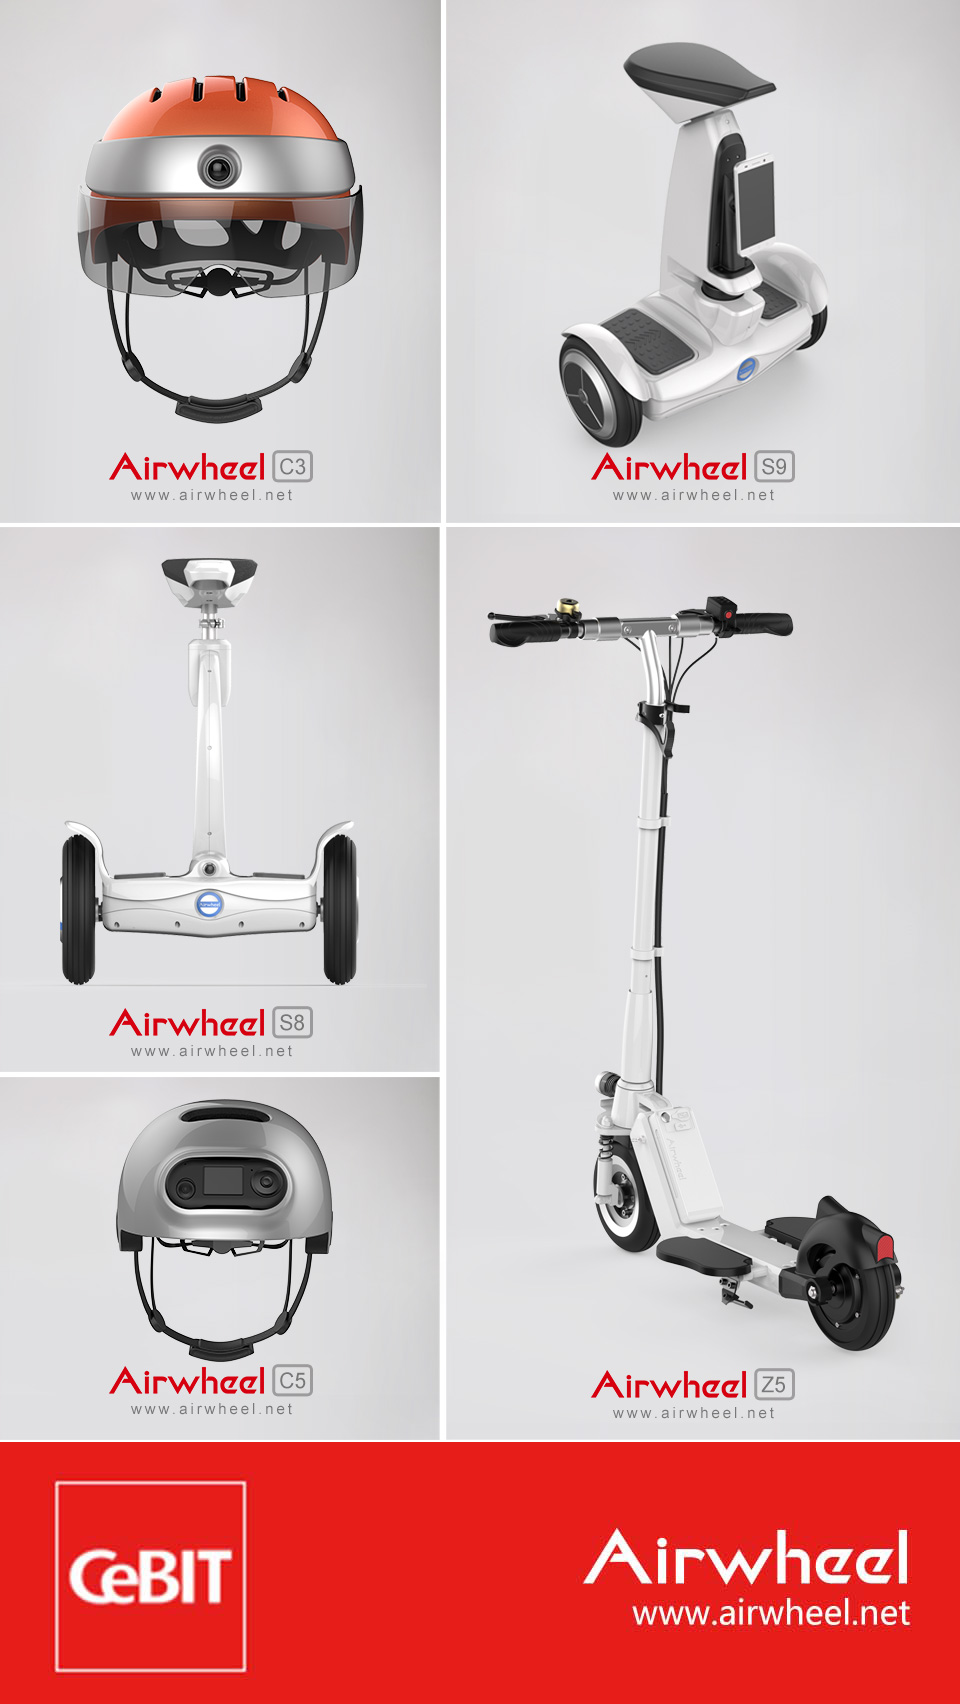 Airwheel S6 saddle-equipped electric scooter